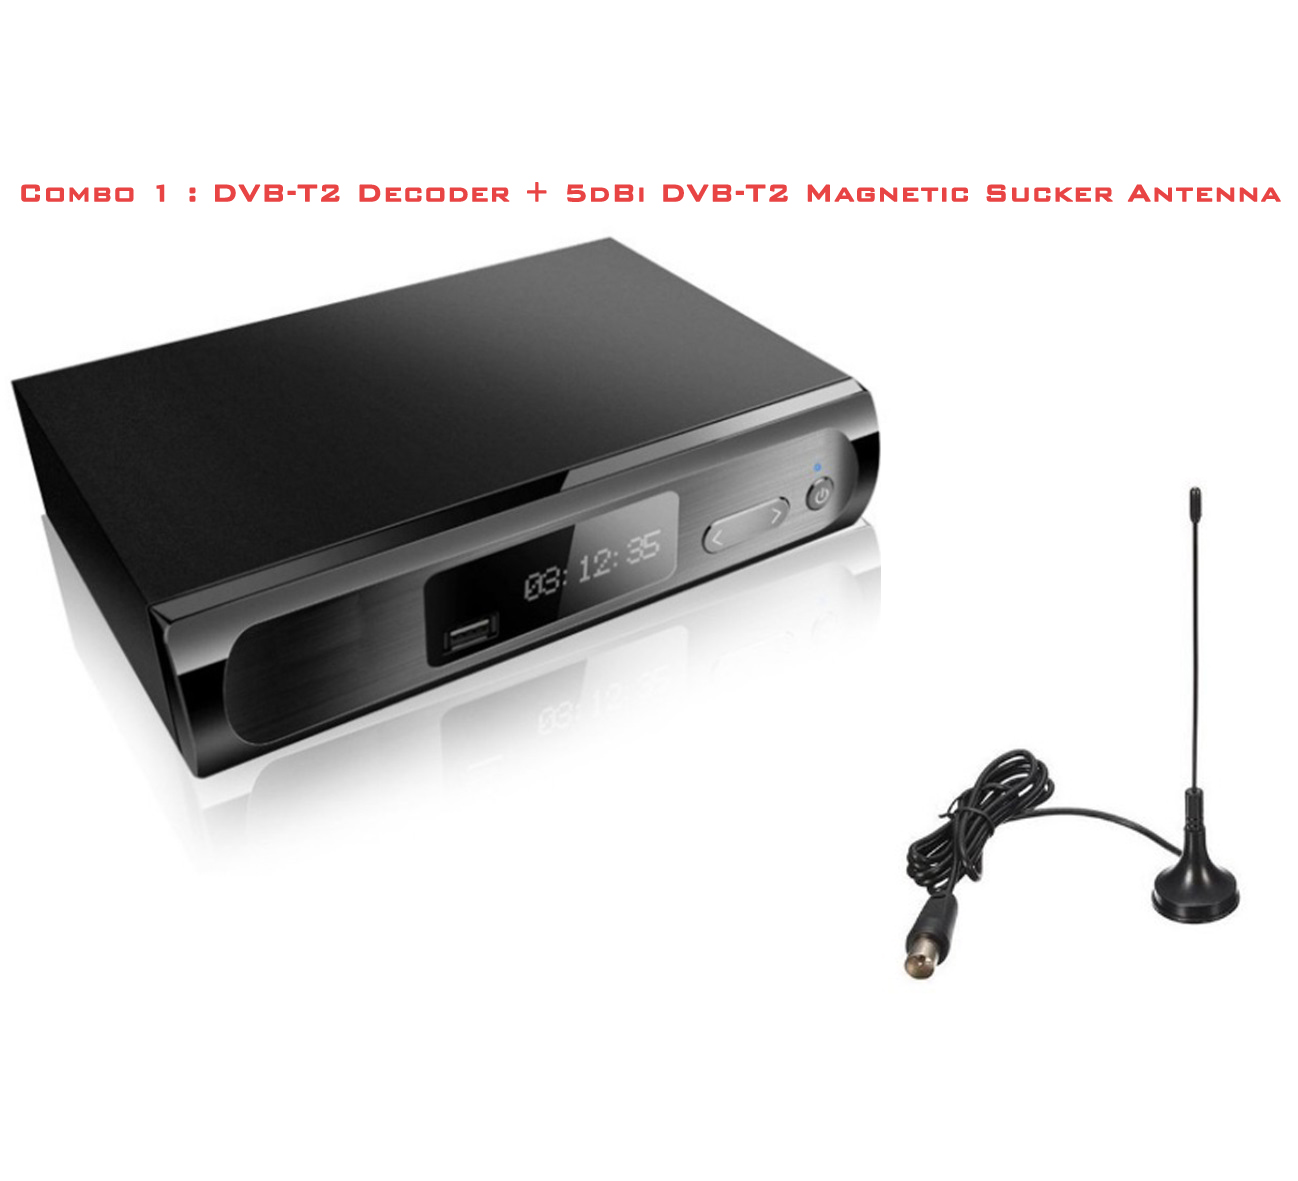 Combo 1 dvbt2 decoder and 5dbi antenna